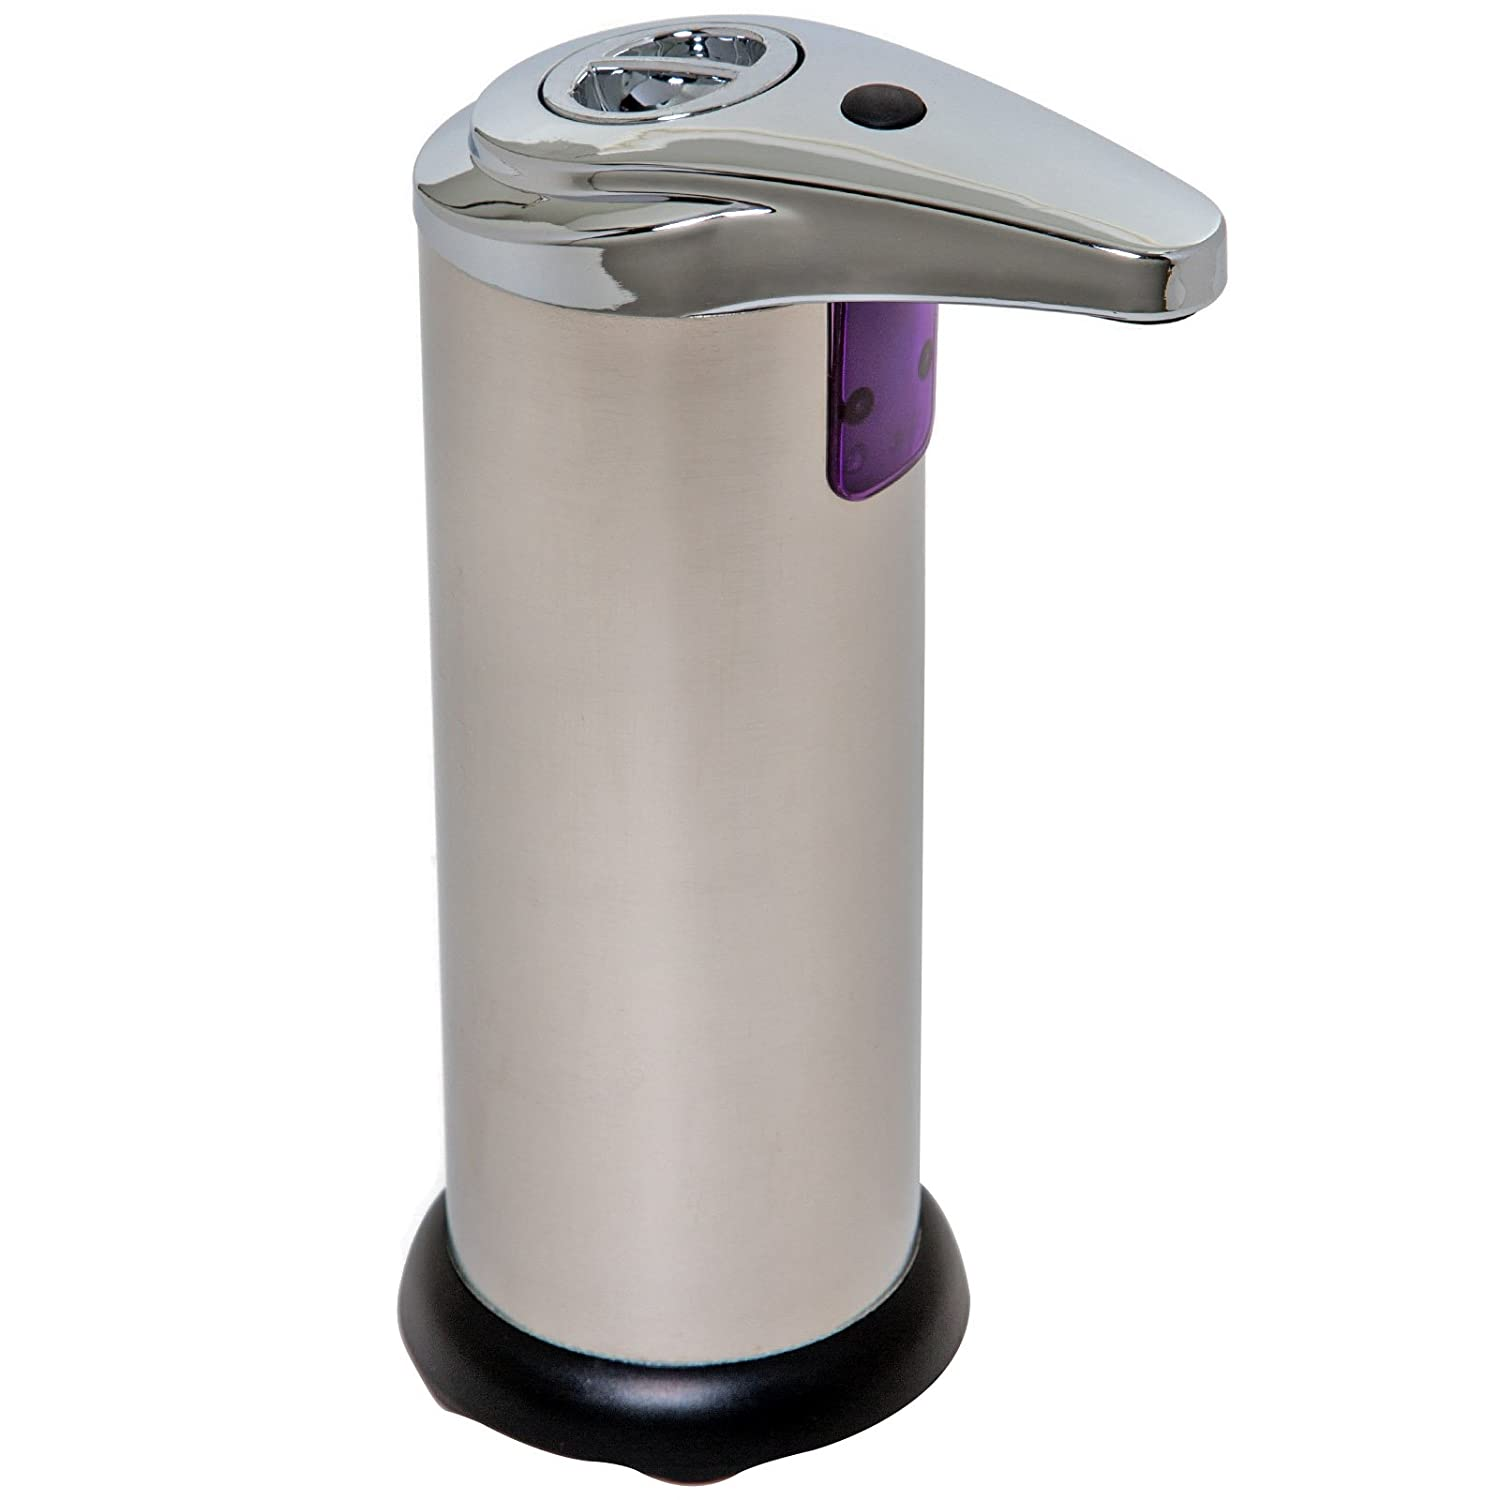 Amazon.com: Homebasix Touch-Free Soap Dispenser, 7.8 Oz, Stainless Steel: Home & Kitchen